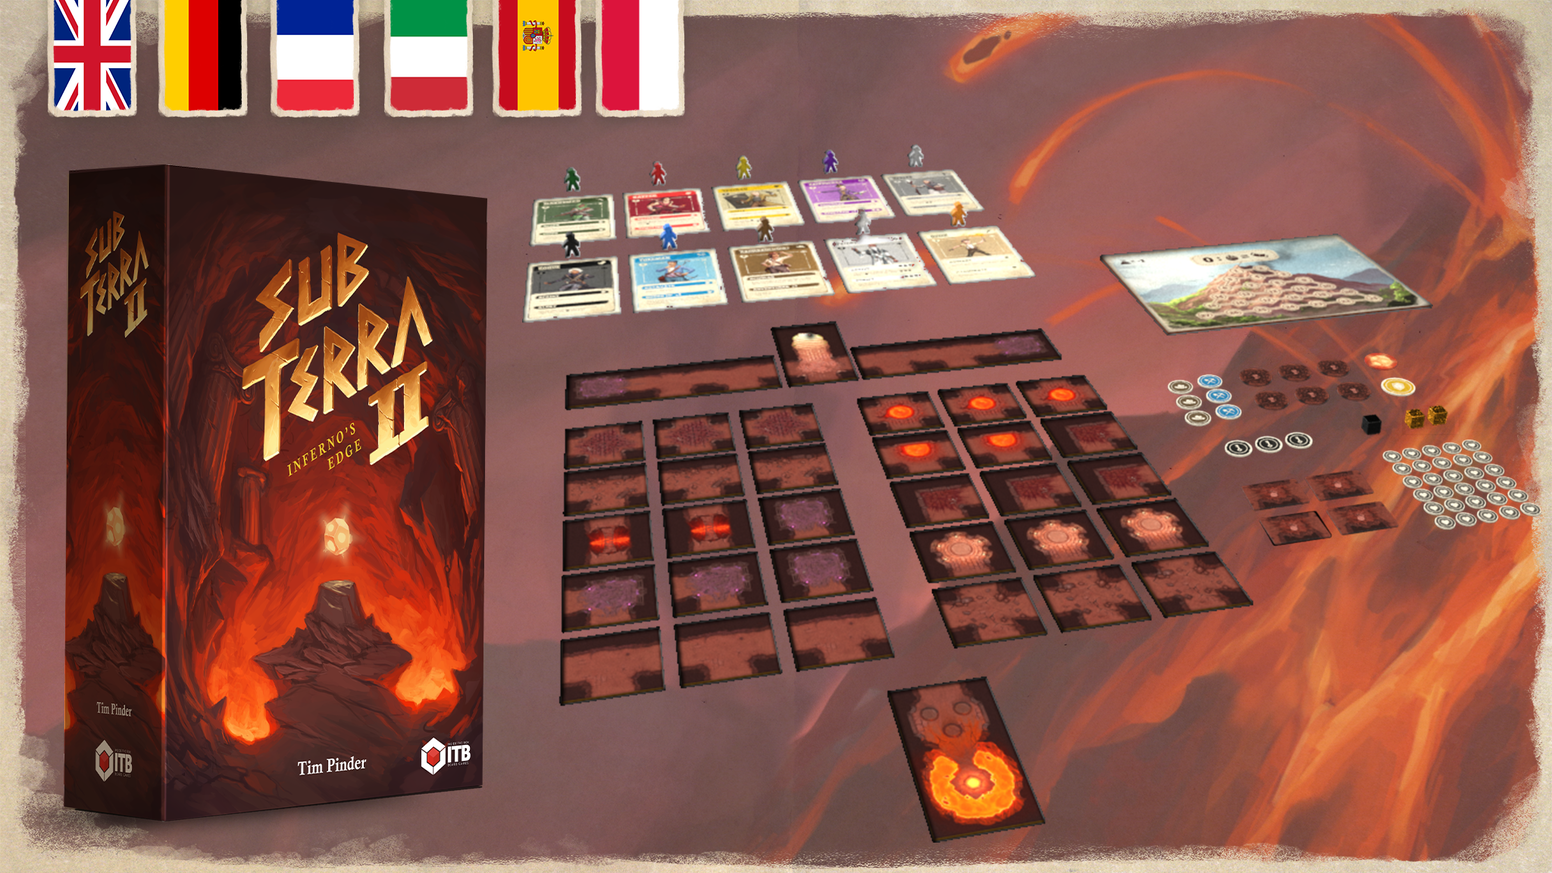 A cooperative adventure board game for 1-6 players. Explore the temple, grab the artifact, and escape before the volcano wakes!